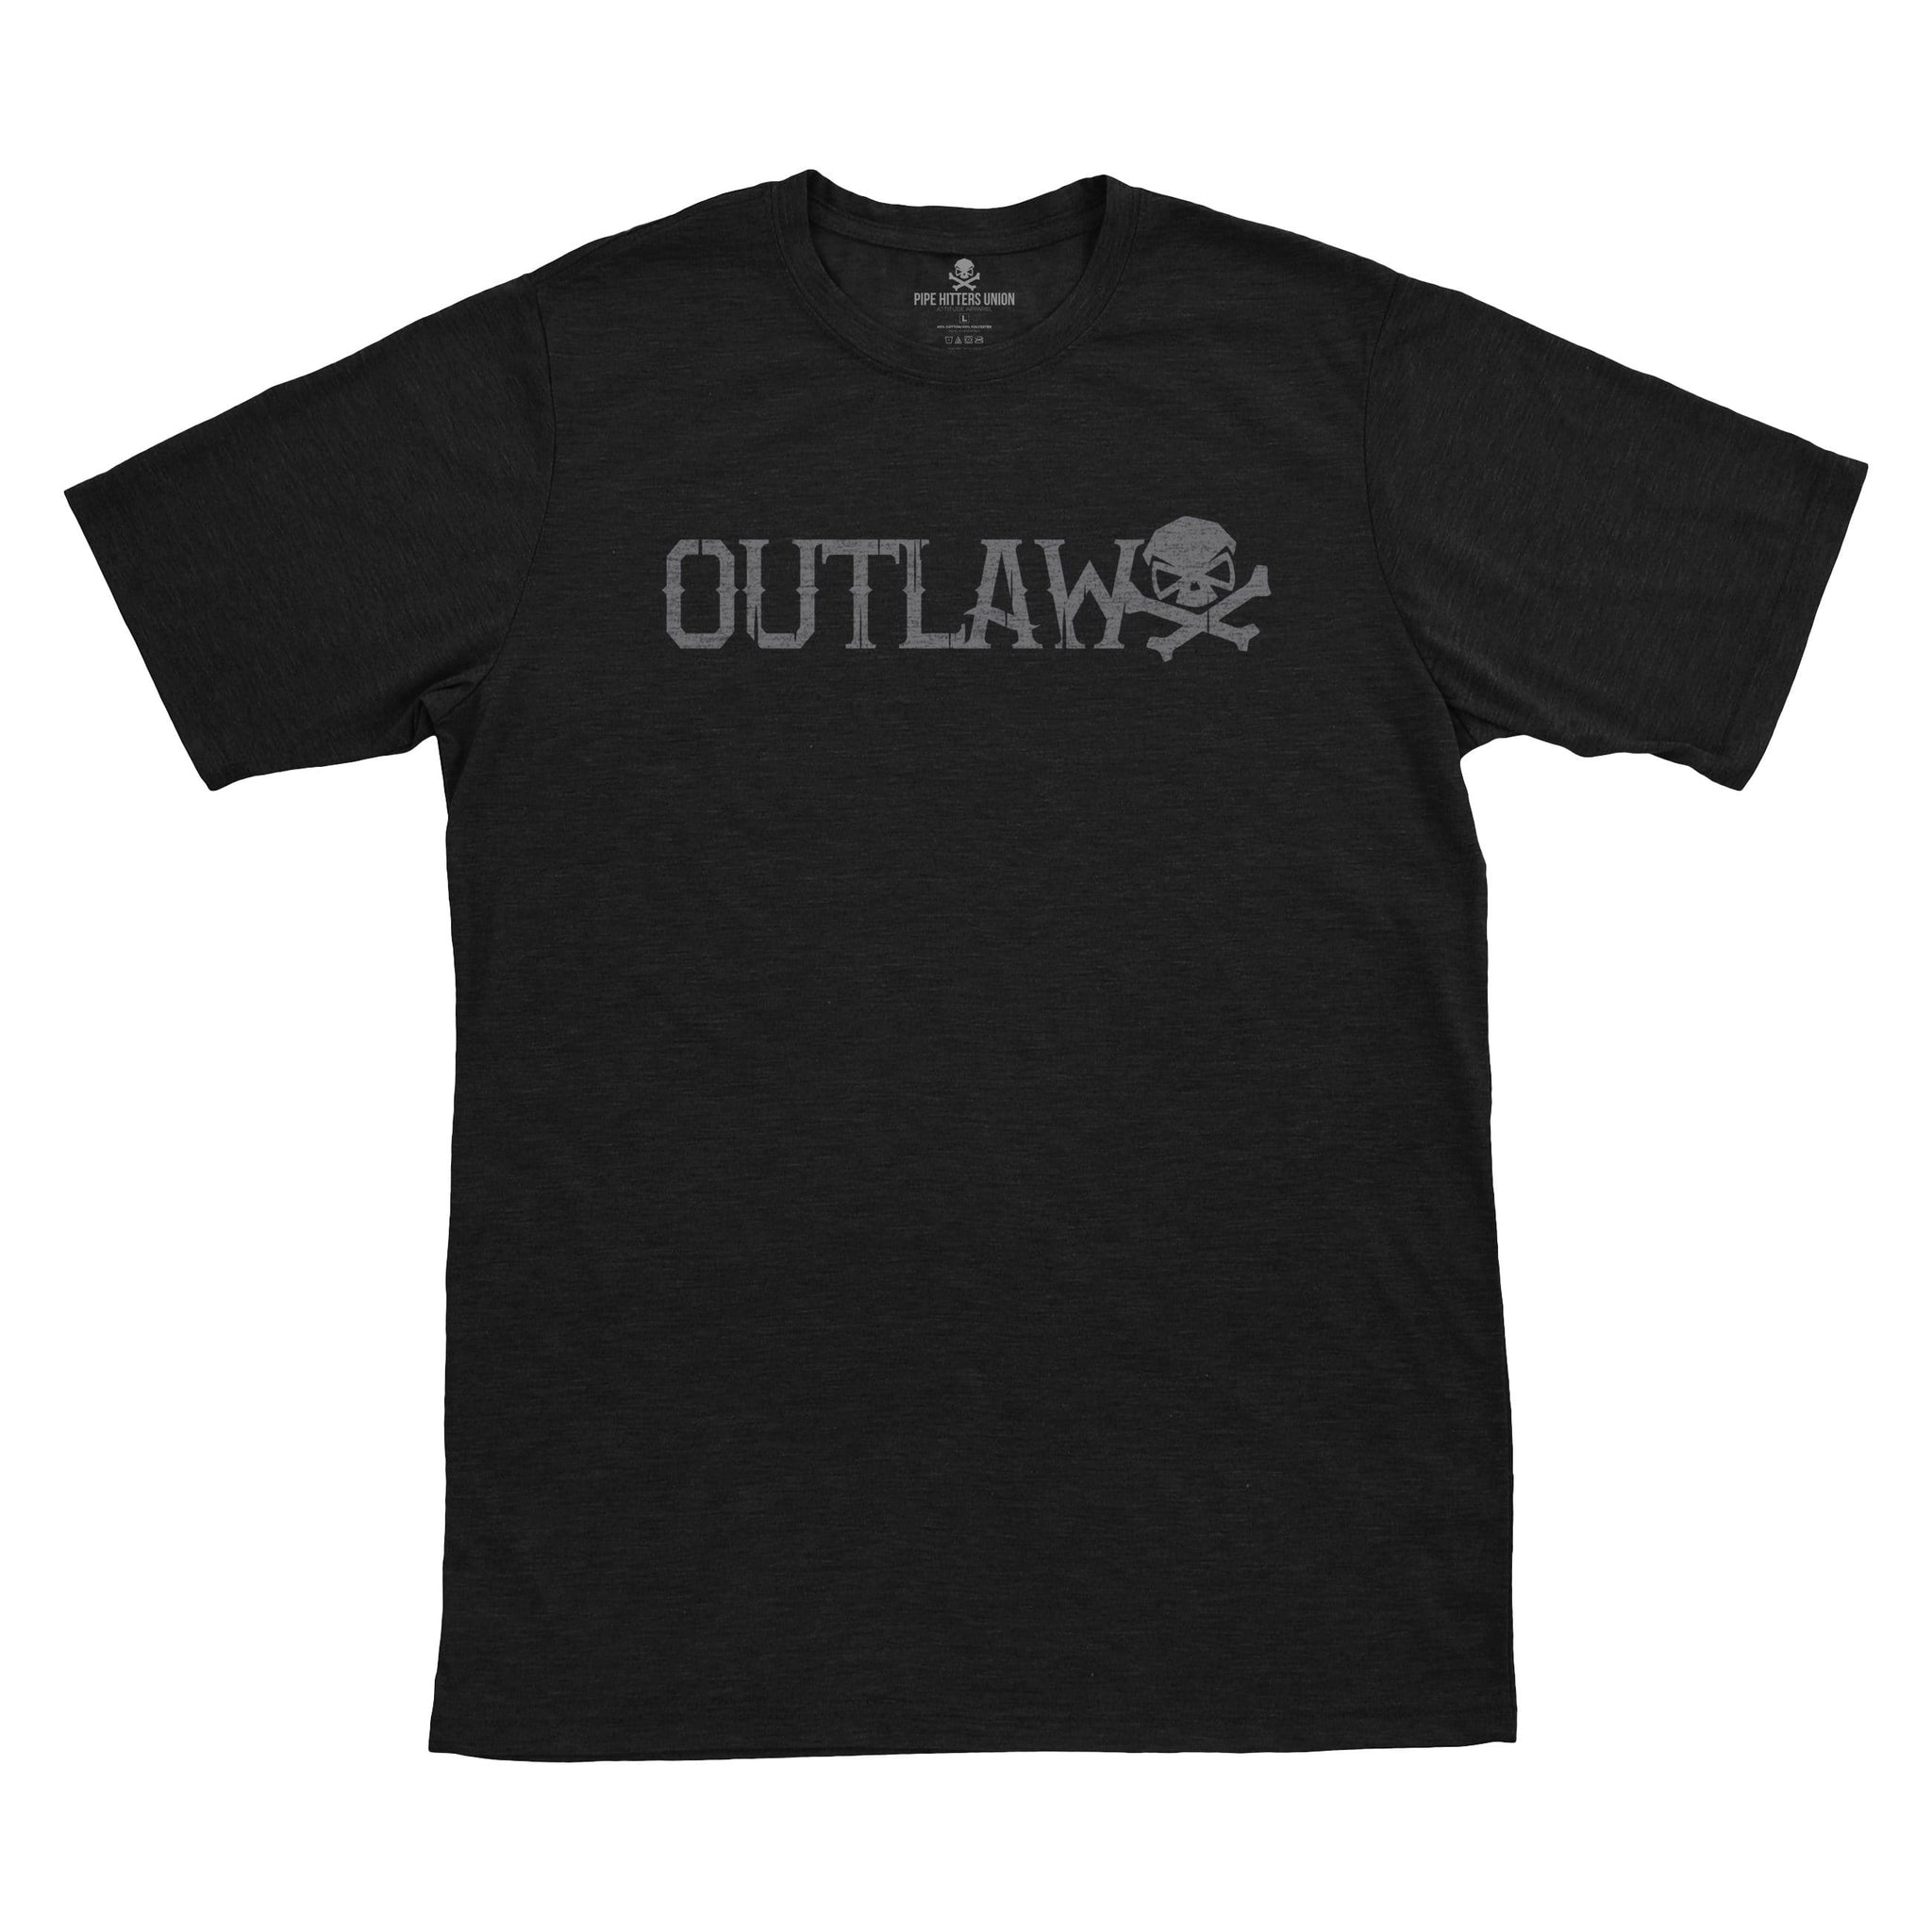 Outlaw - Pipe Hitters Union